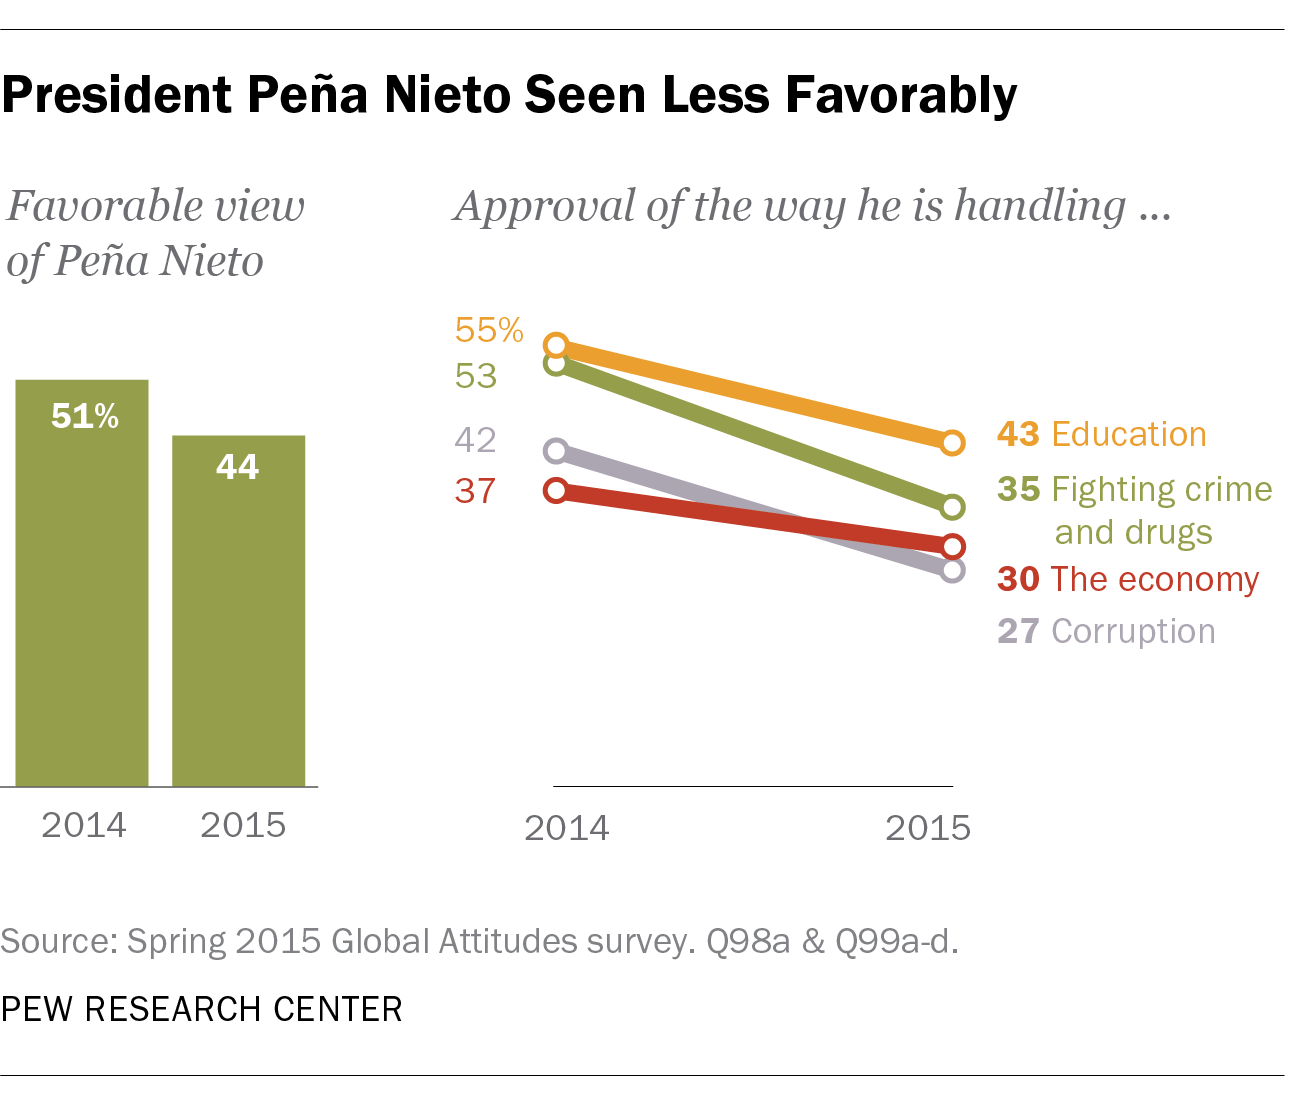 President Peña Nieto Seen Less Favorably